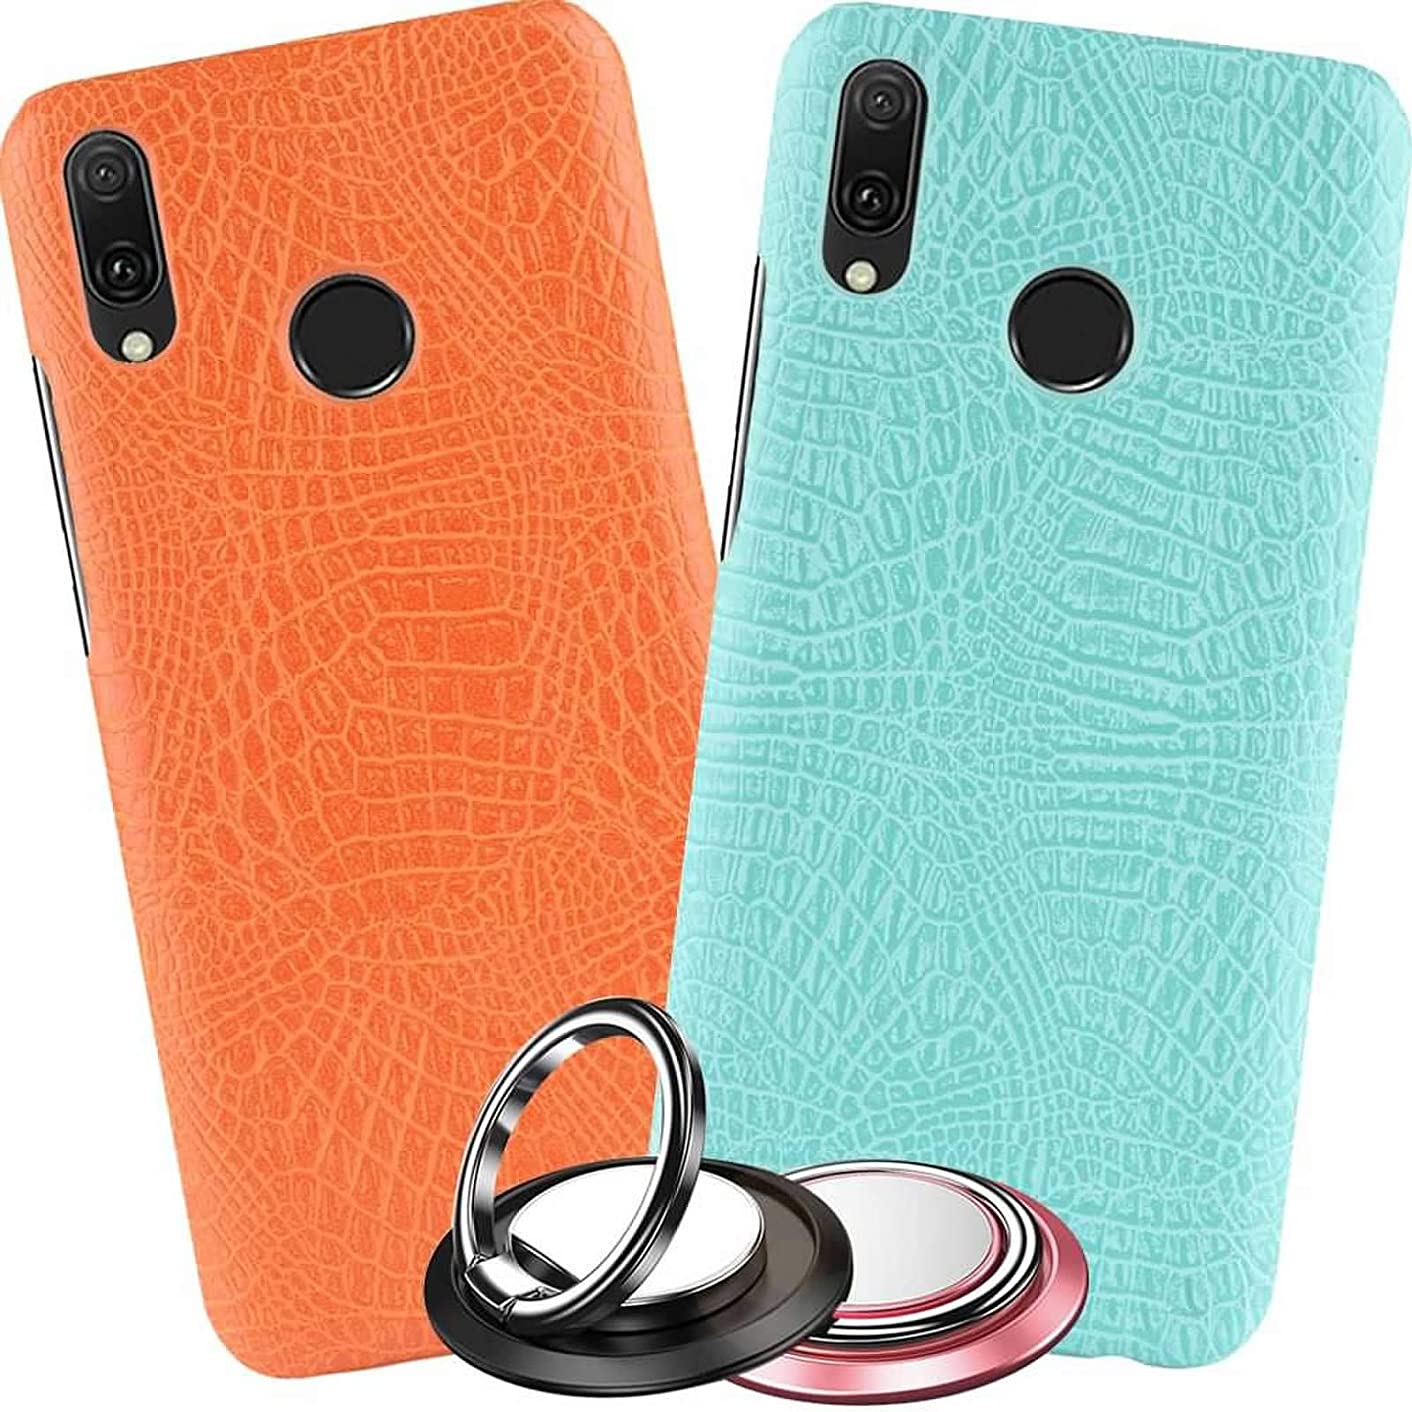 2X Huawei Y9 2019 Case Crocodile Pattern Leather for Men Women Girls,Ultra Slim Cover for Huawei Y9 2019 with 2 Pack Phone Case Kickstand Protector